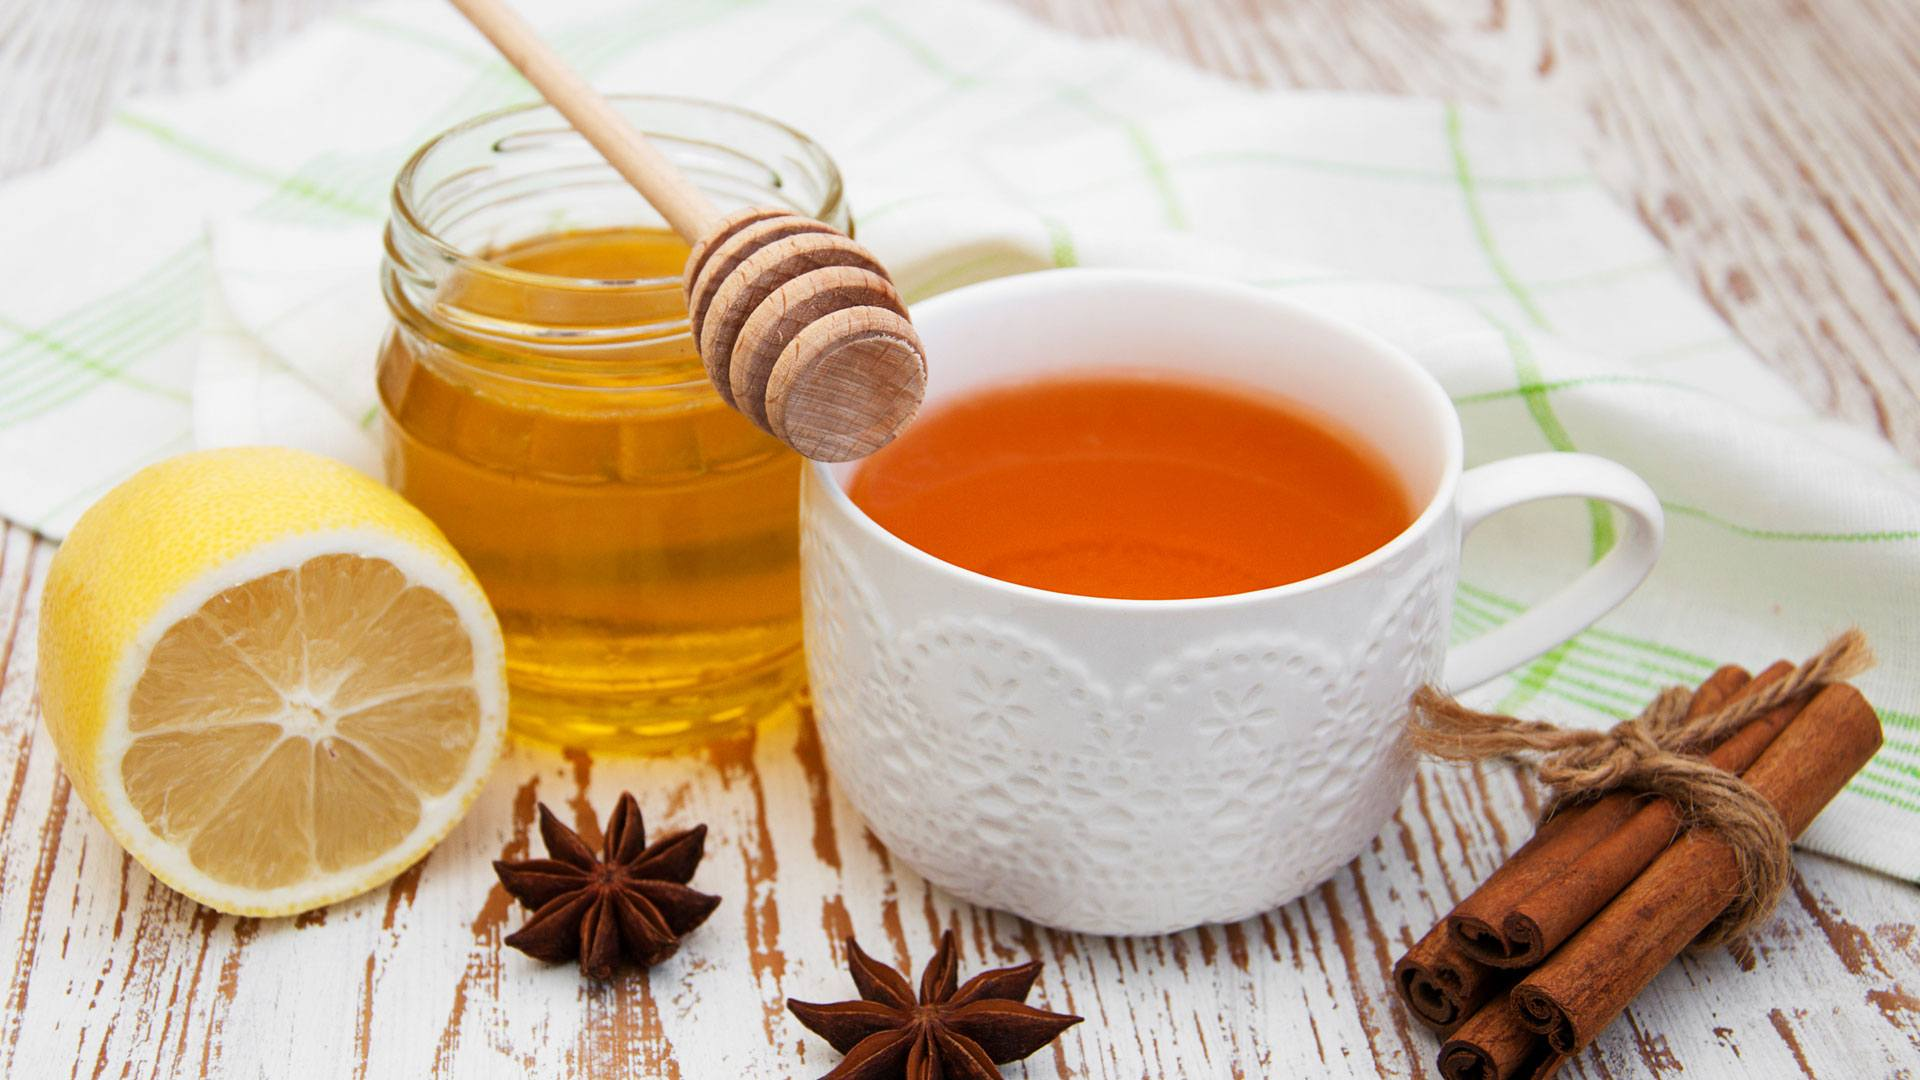 does cinnamon and honey help you lose weight